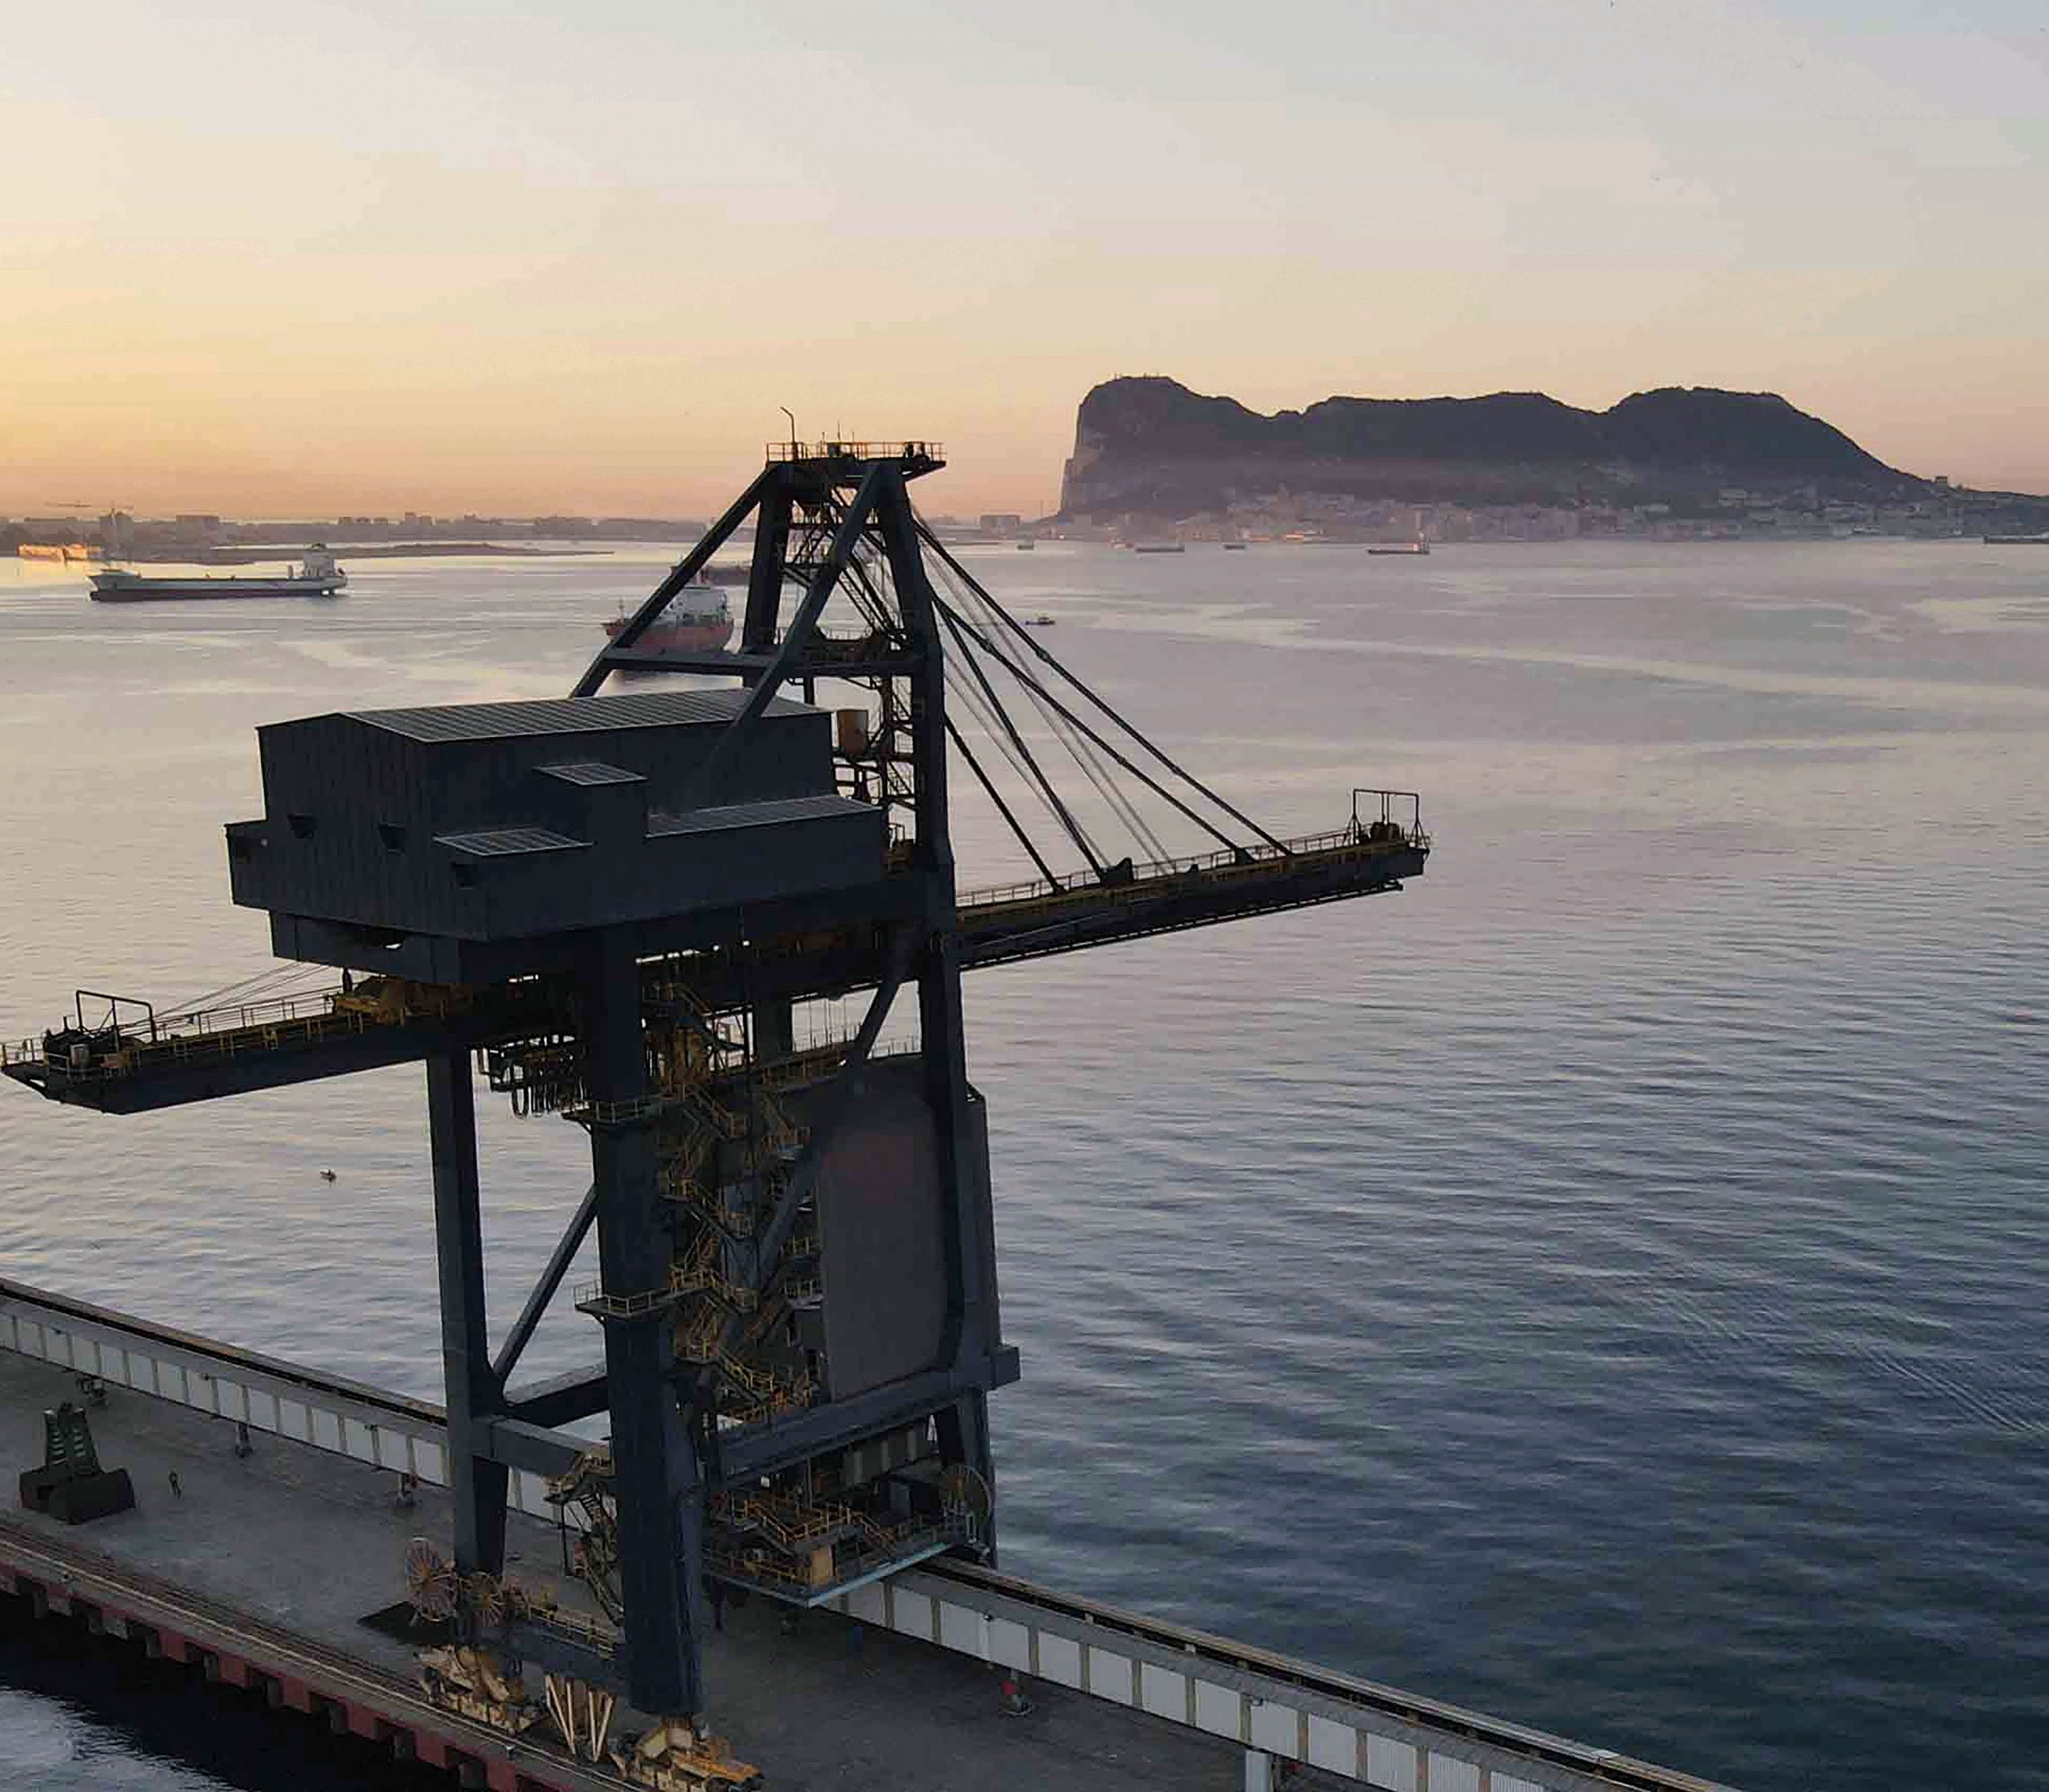 Endesa's Algeciras facility will be Spain's largest LNG bunkering terminal ©Endesa